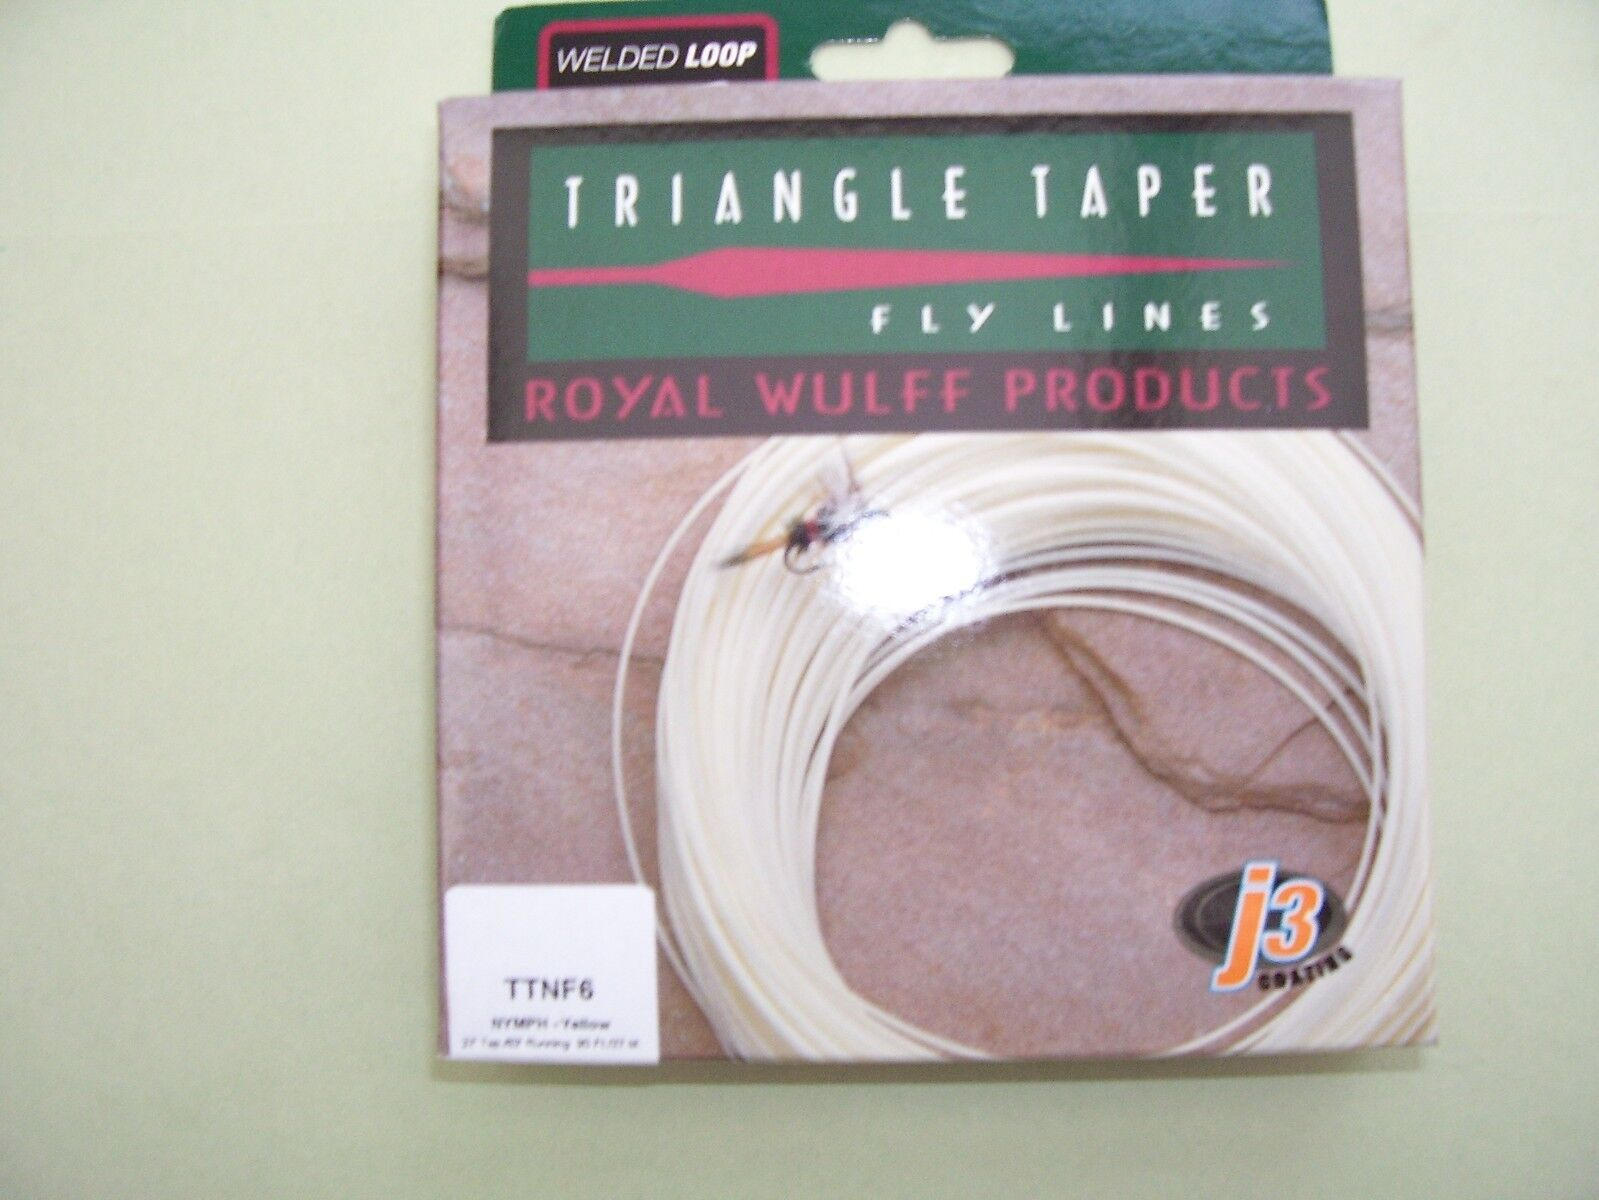 Lee Wulff Fly Line Nymph Triangle Taperot Floating Gelb Forward 4, 5, 6 or 7wt